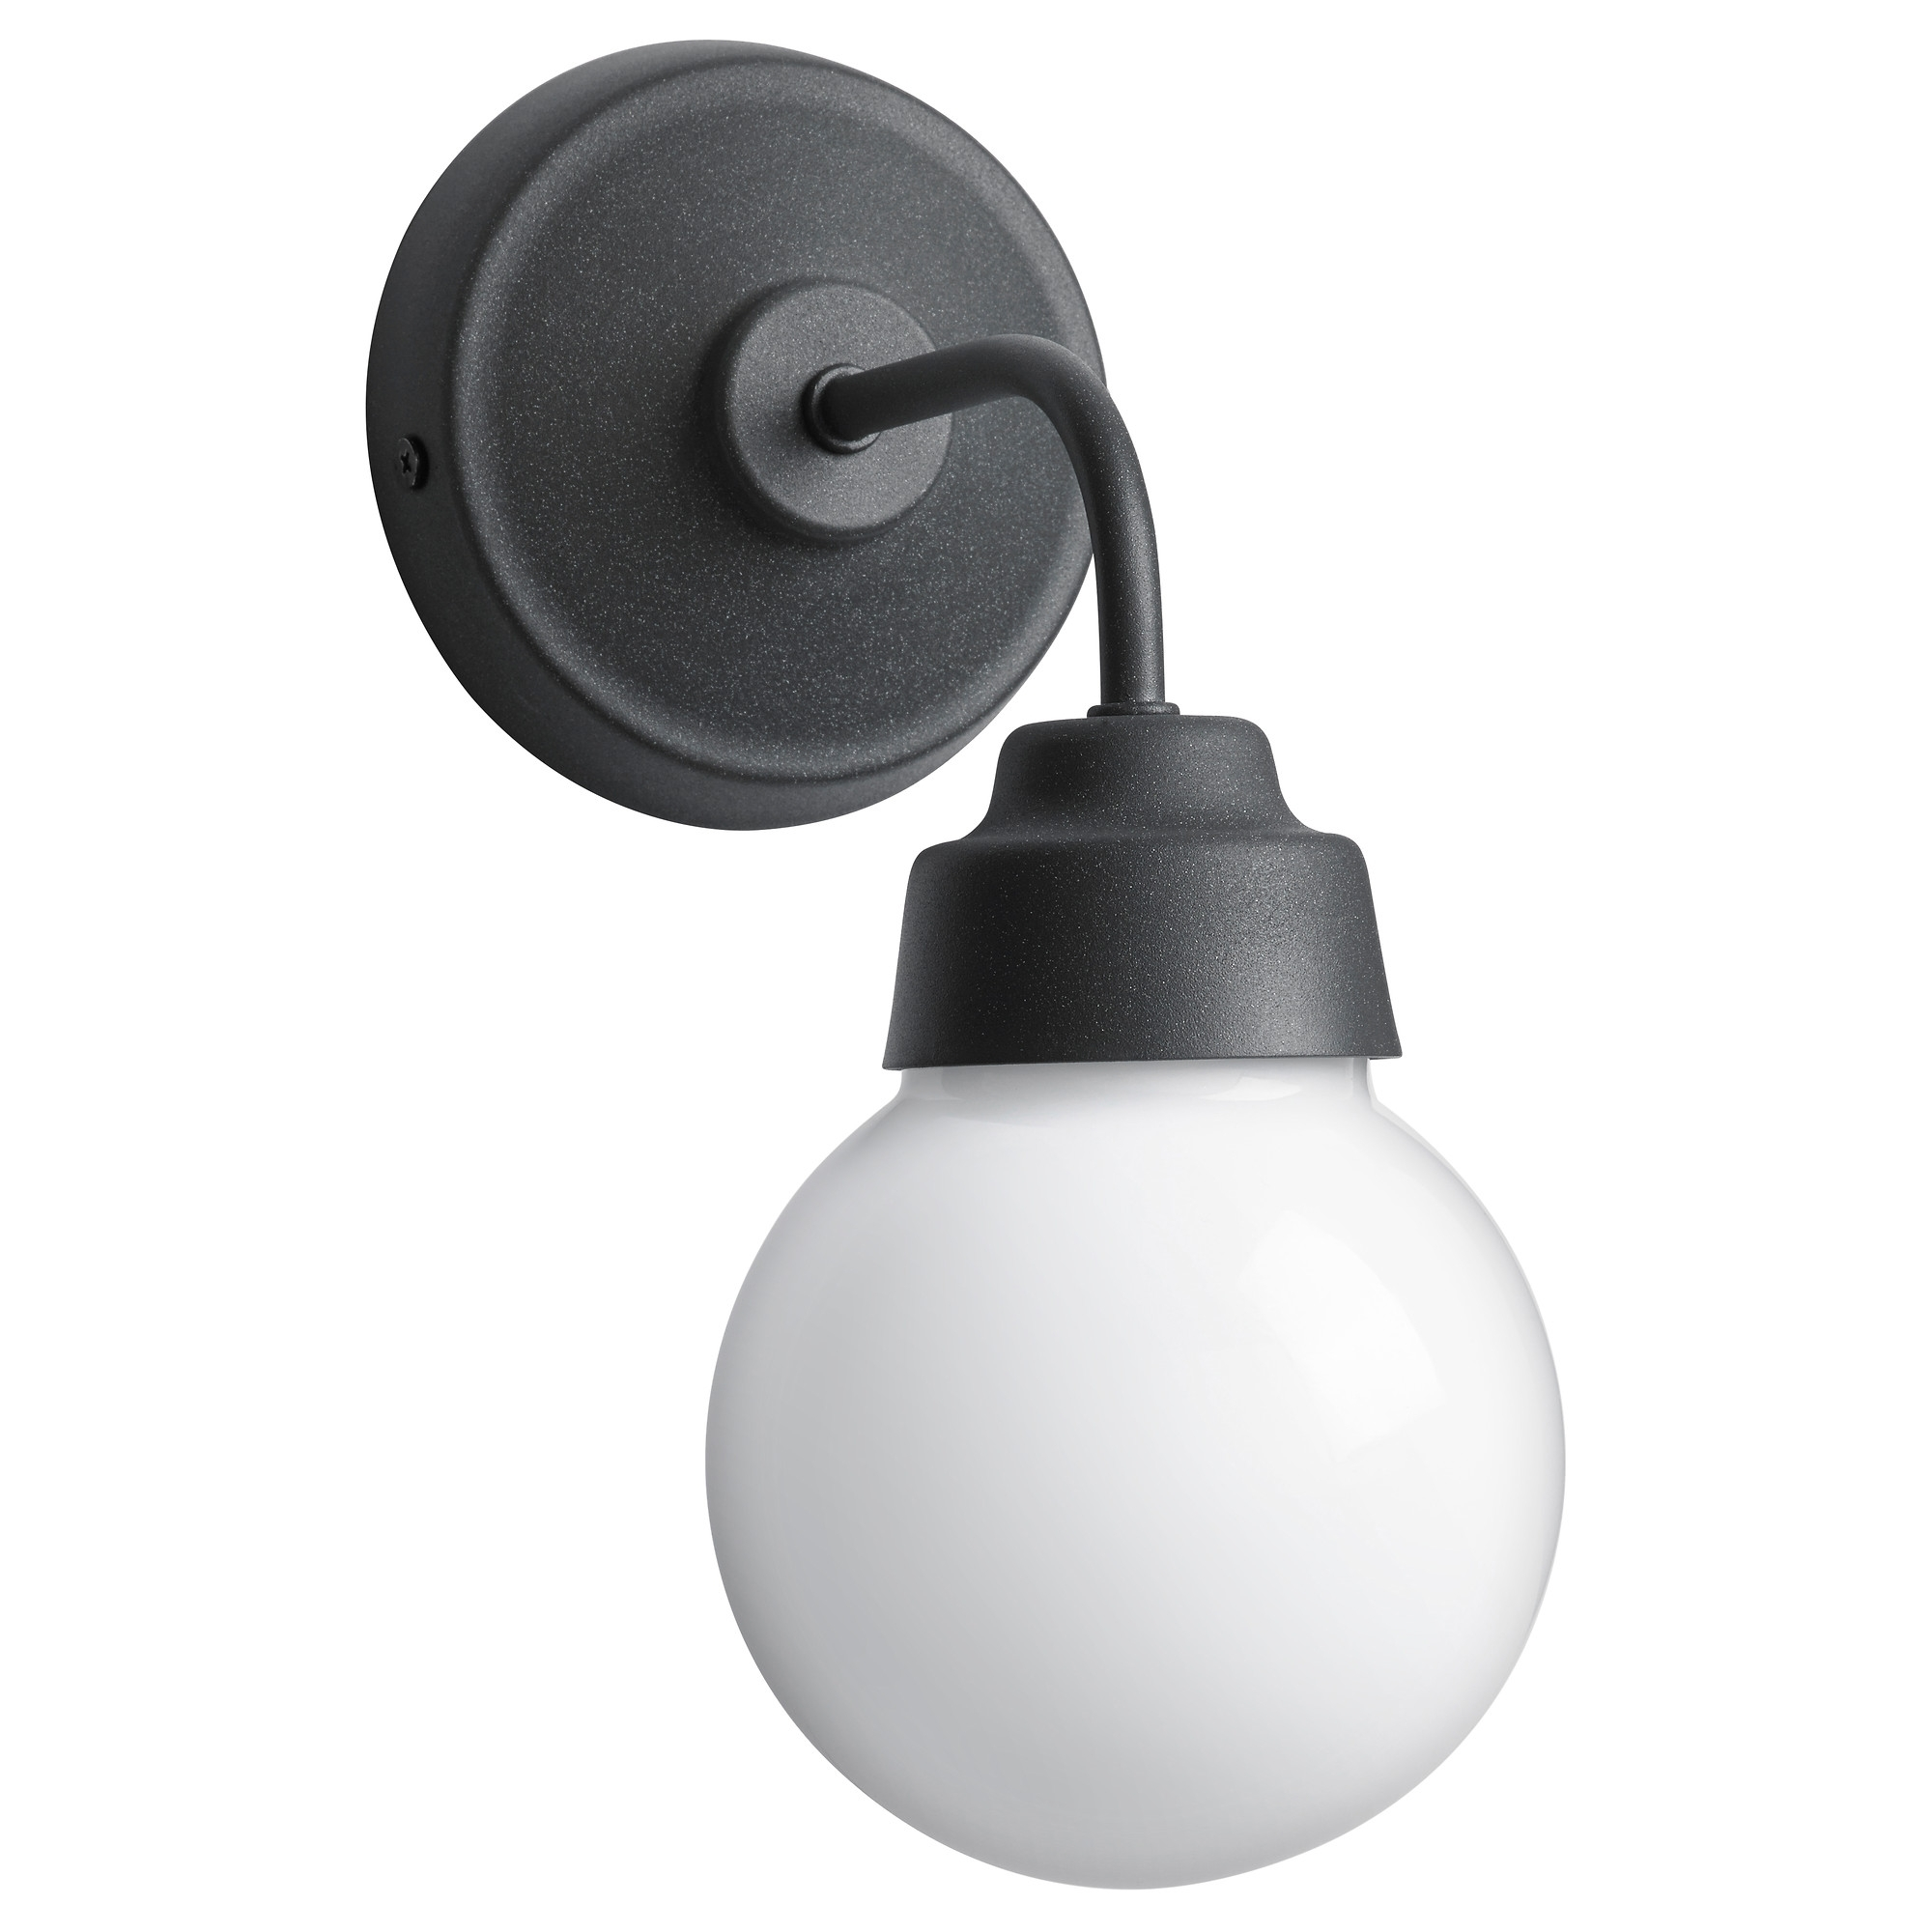 Current Ideas & Tips: Stunning Ikea Plug In Wall Sconce For Home Decor Ideas With Outdoor Wall Lights At Ikea (View 3 of 20)